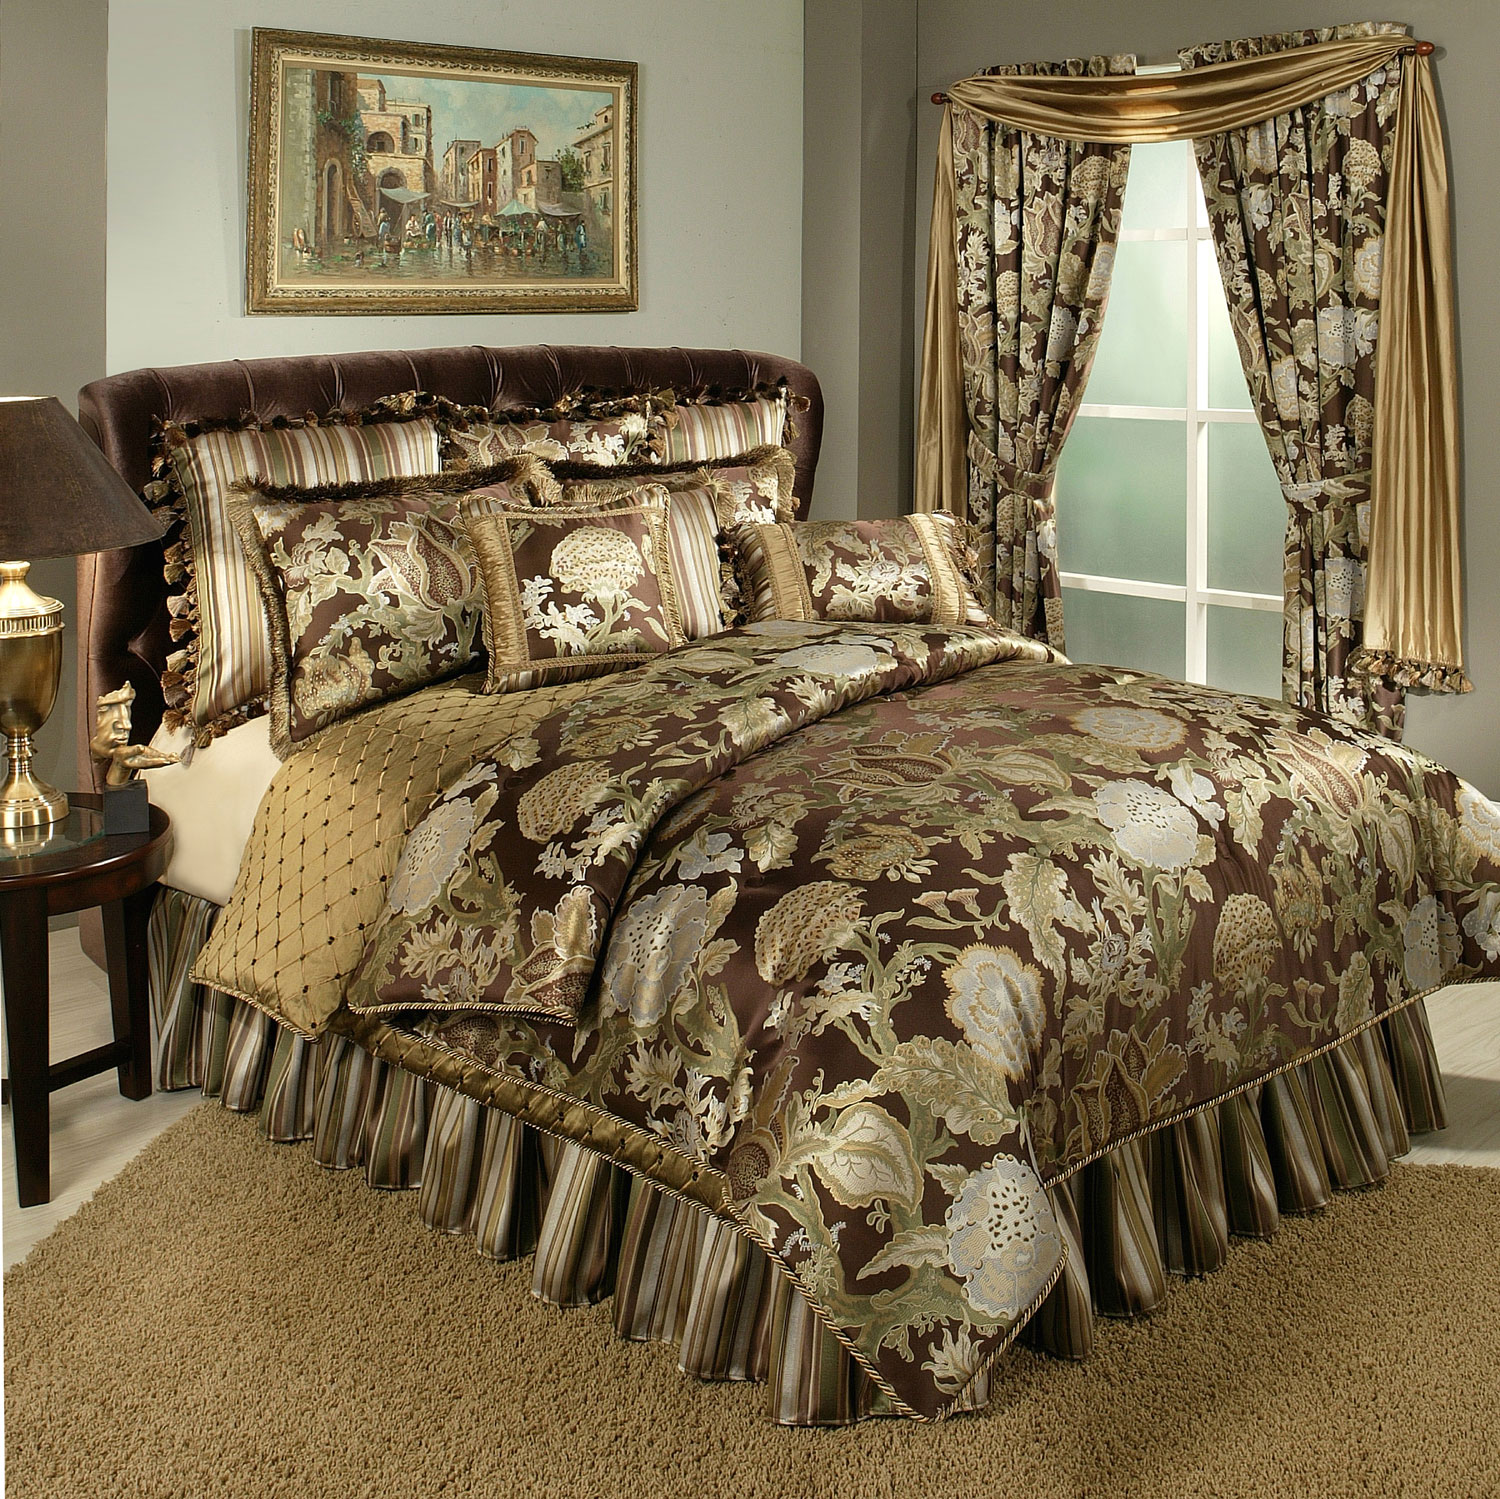 Wonderland By Austin Horn Luxury Bedding